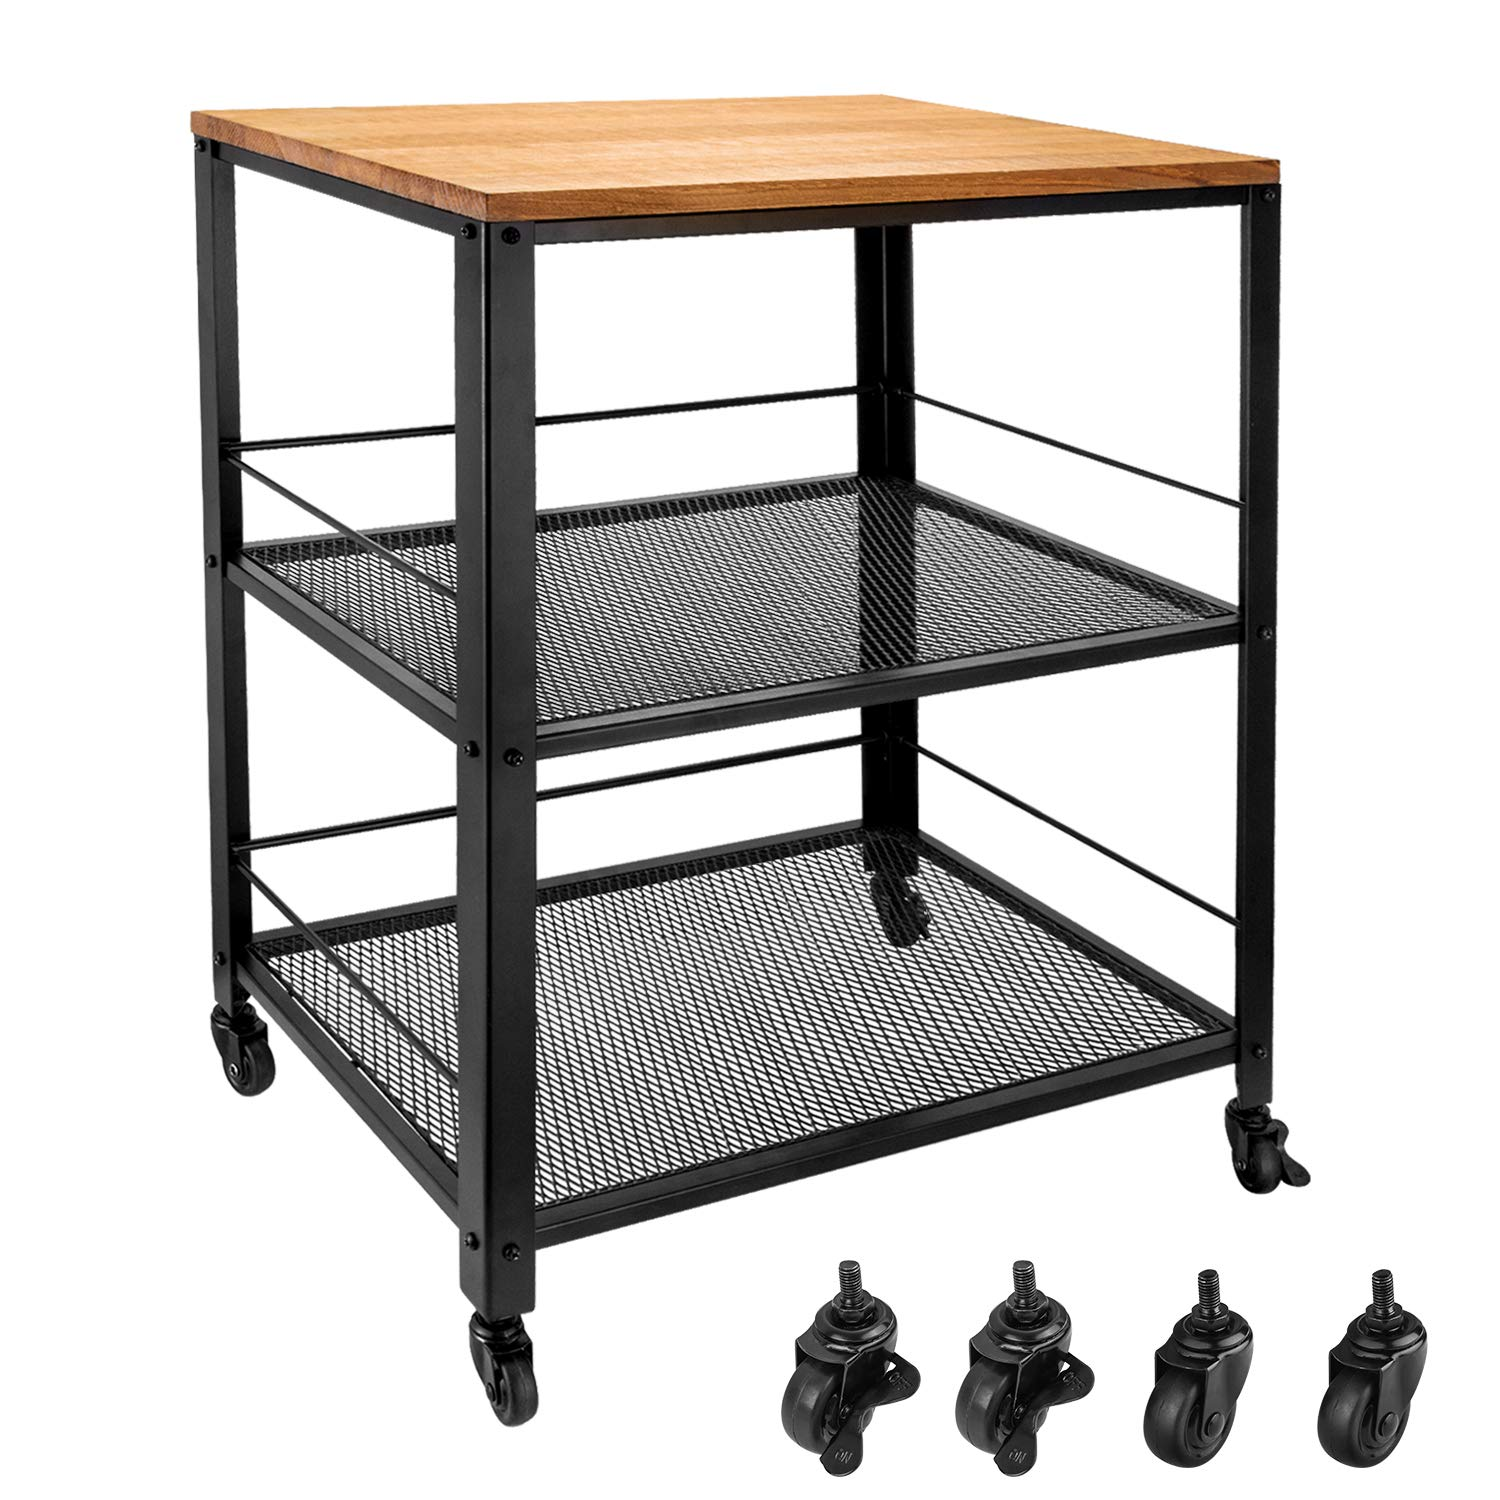 Amazon.com: Vintage Serving Cart, 3 Tier Rolling Utility ...